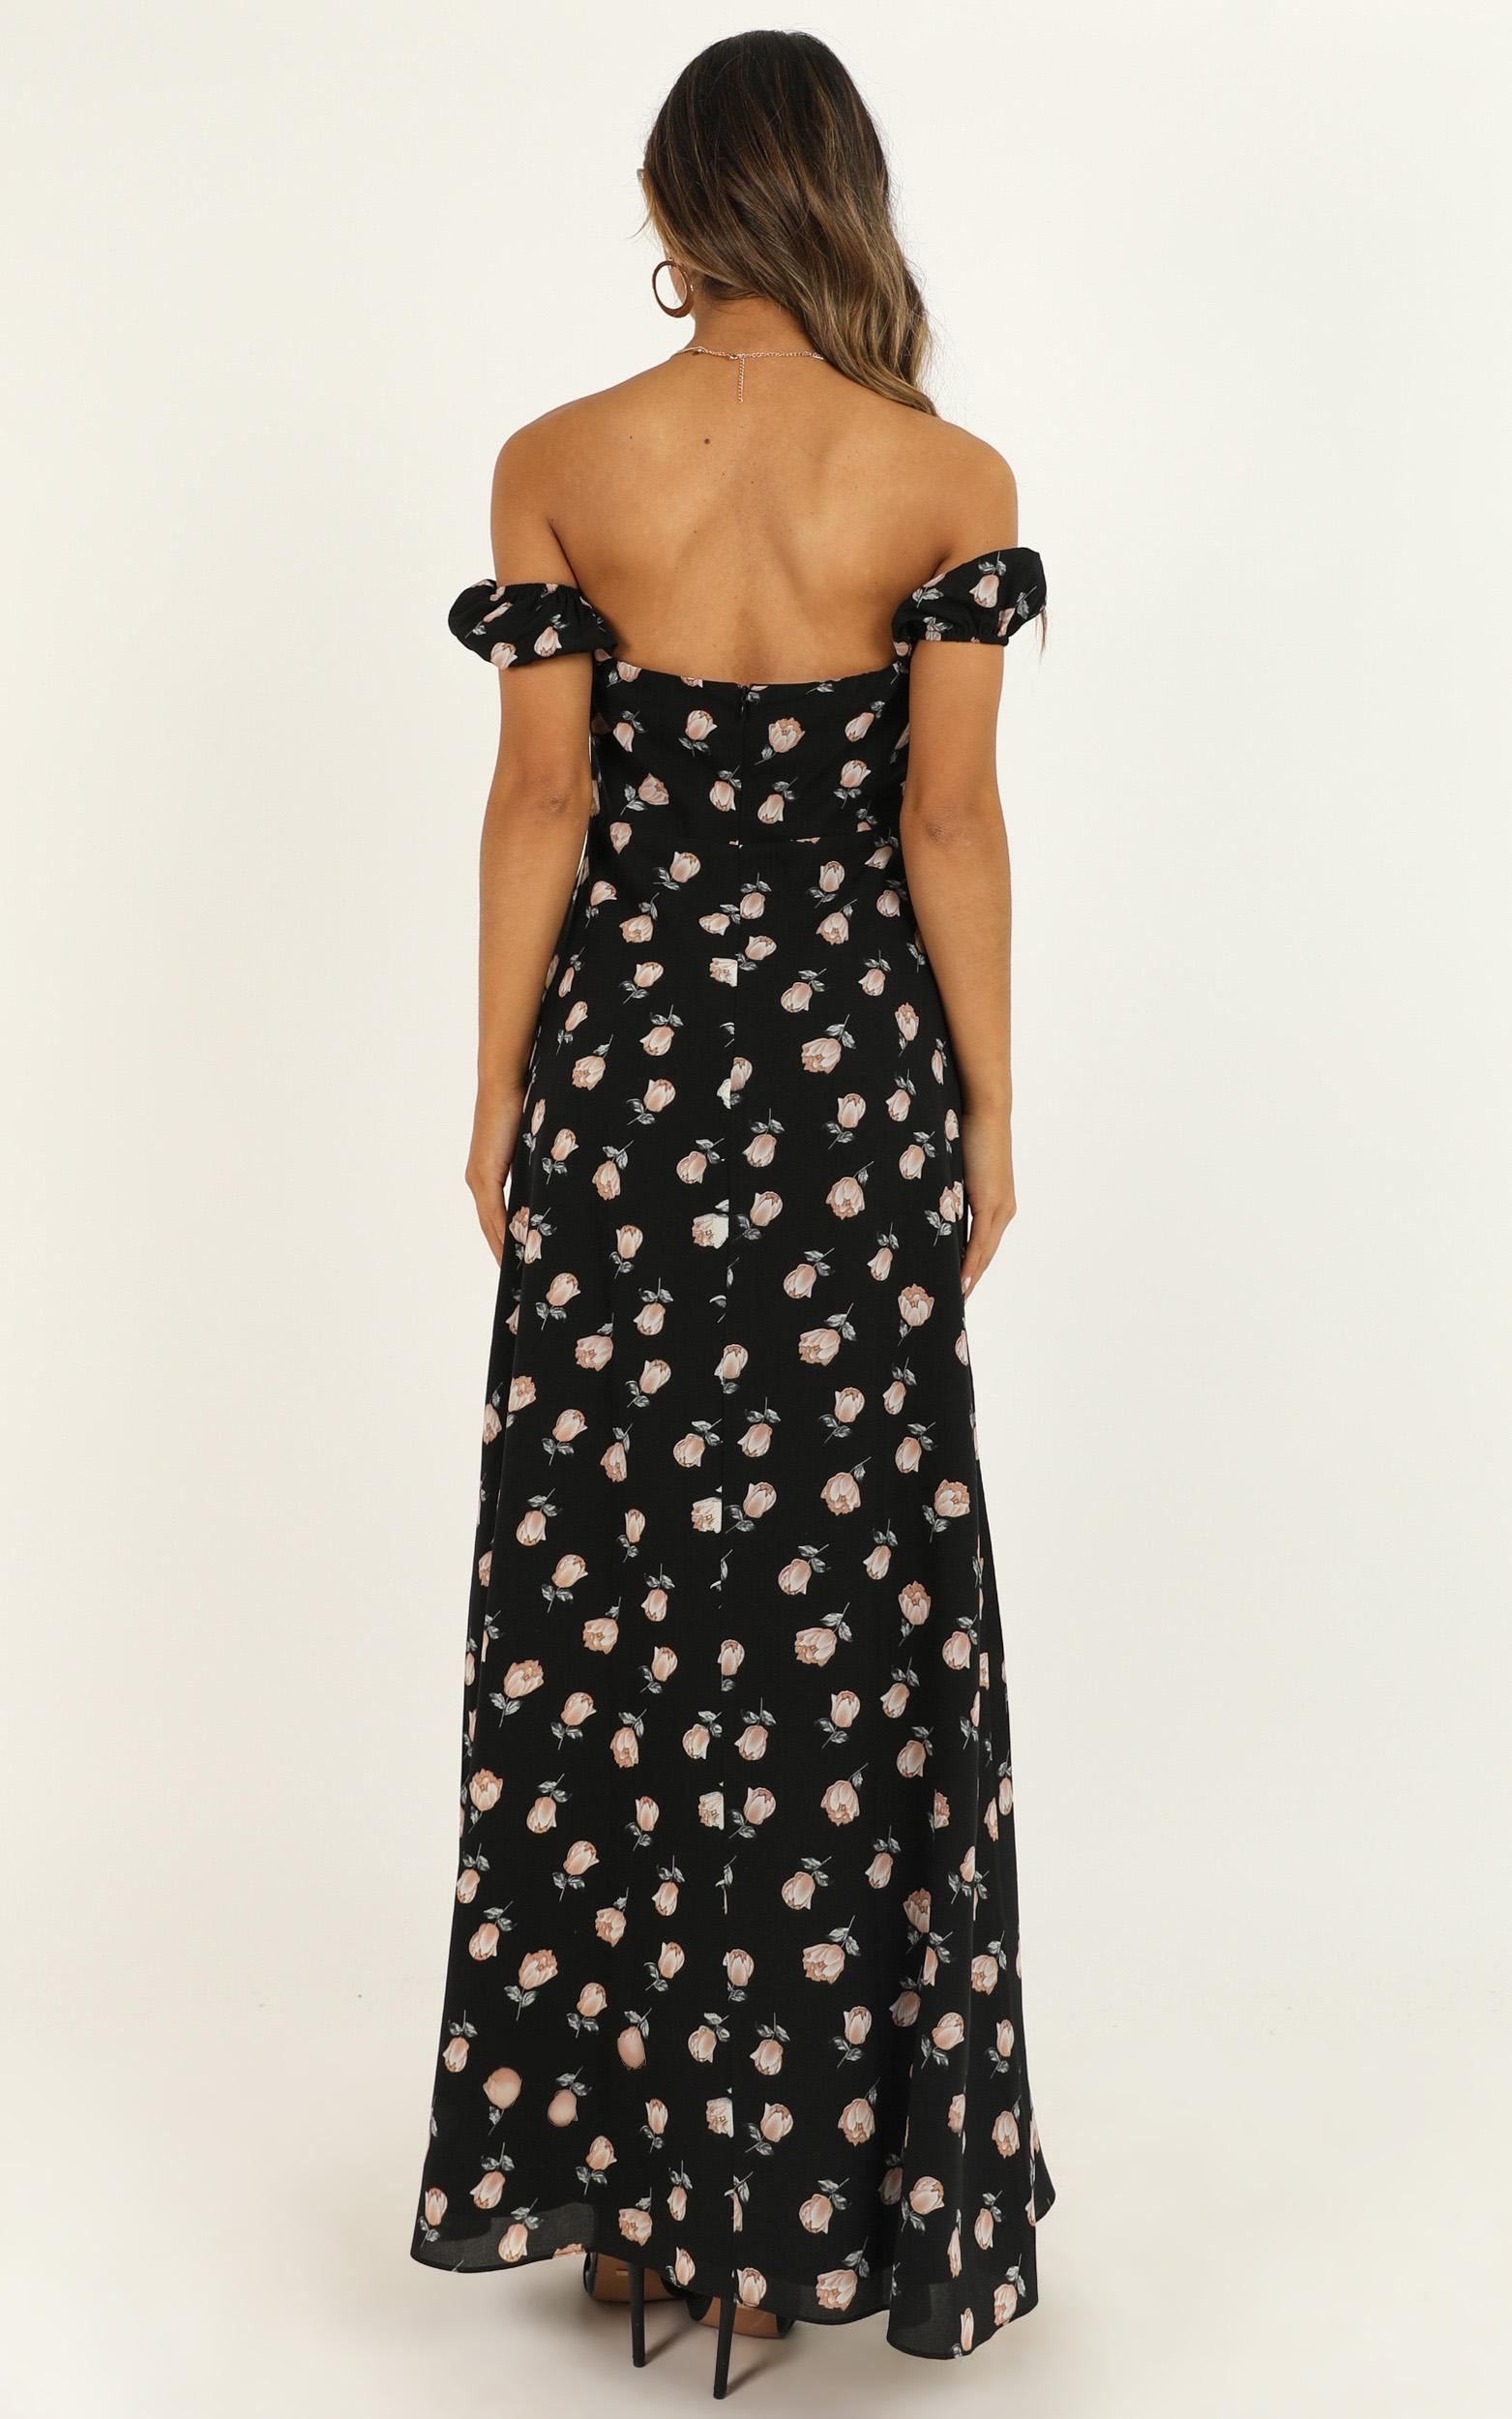 Too Busy Being In Love Dress In black floral - 20 (XXXXL), Black, hi-res image number null